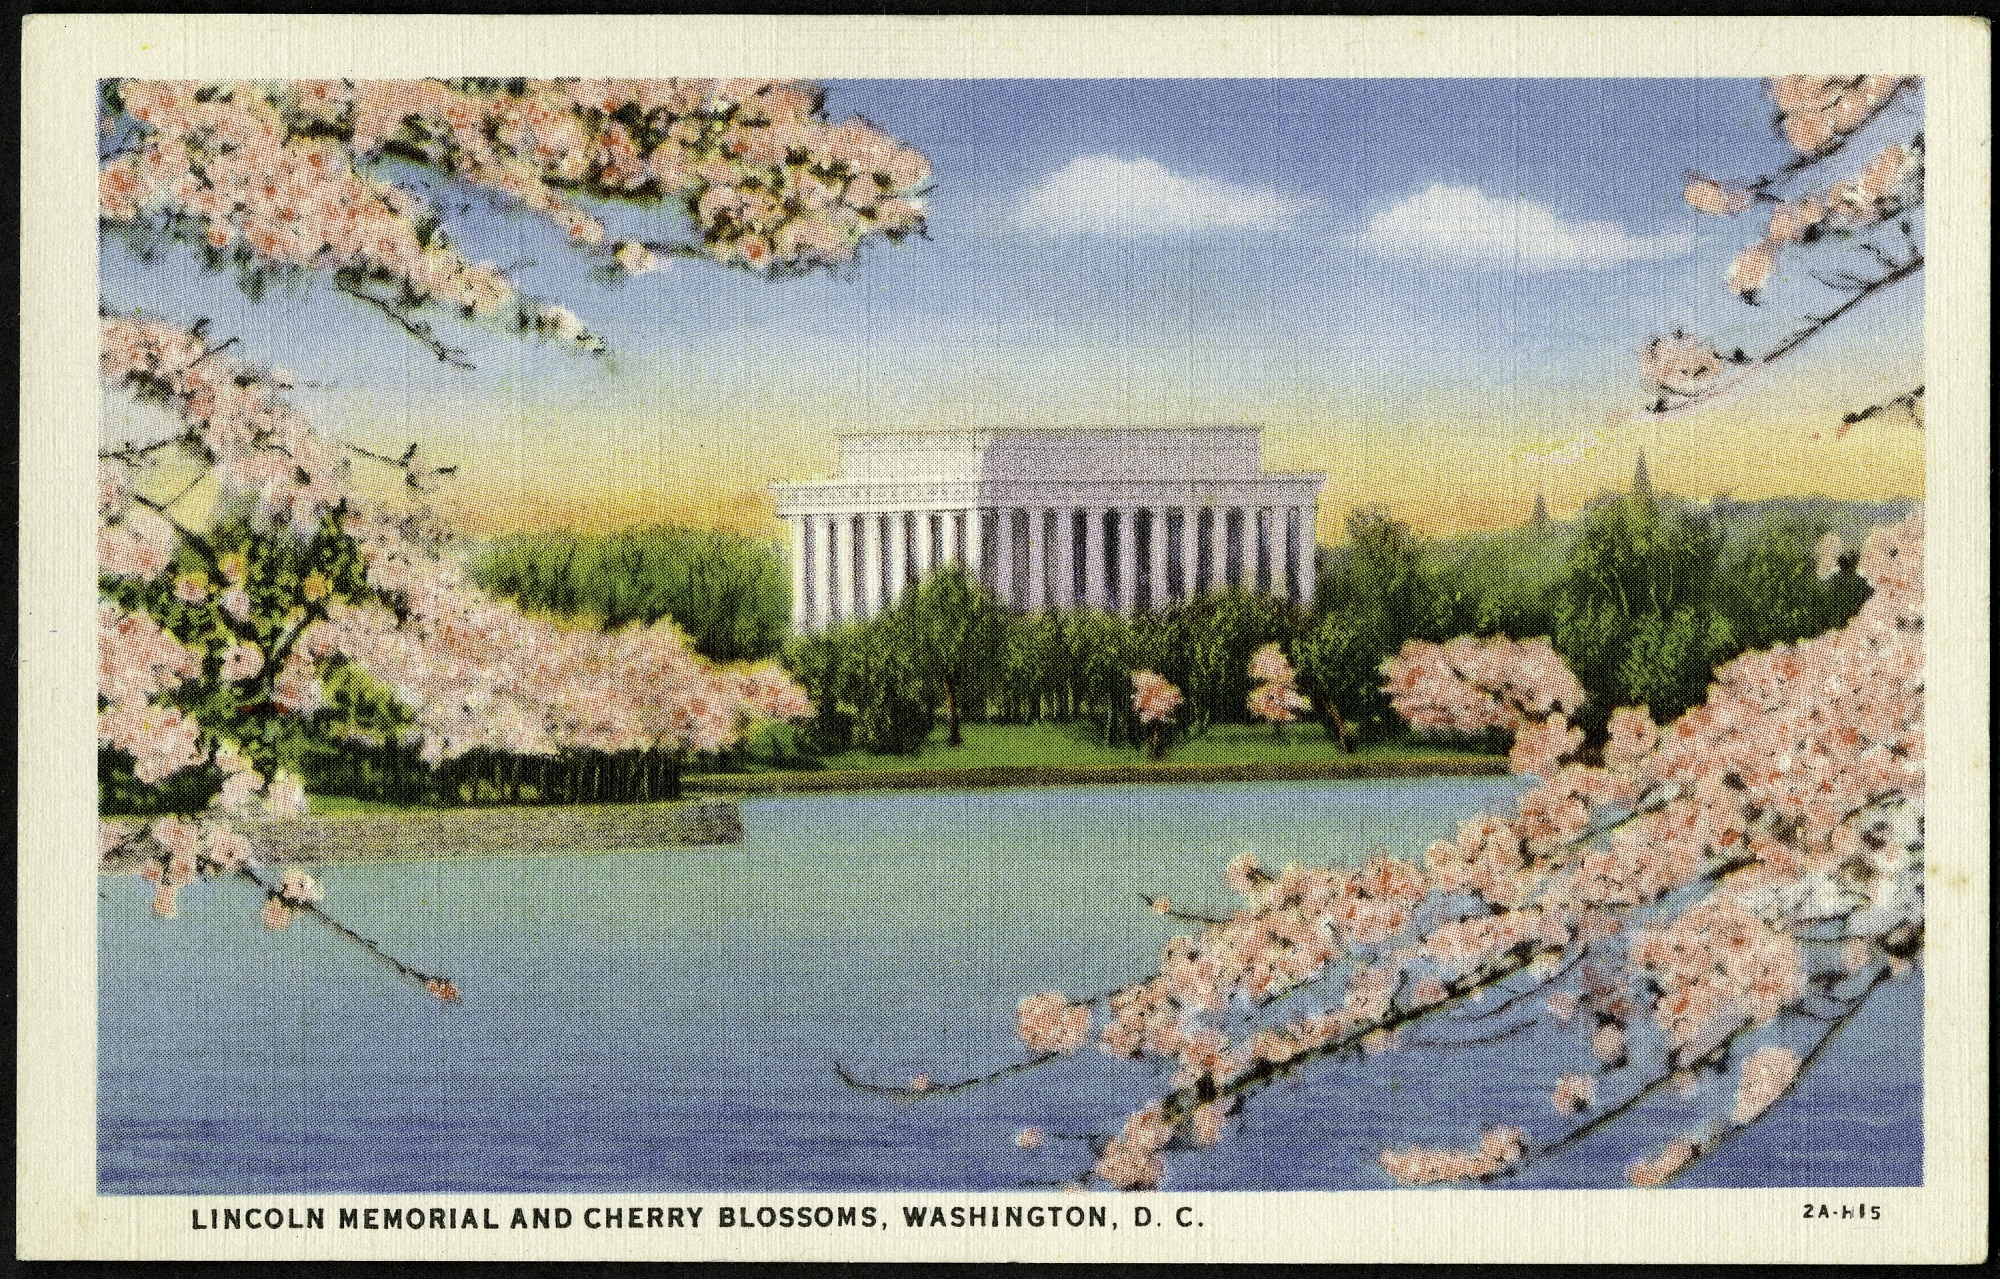 Postcard of the Lincoln Memorial and Cherry Blossoms